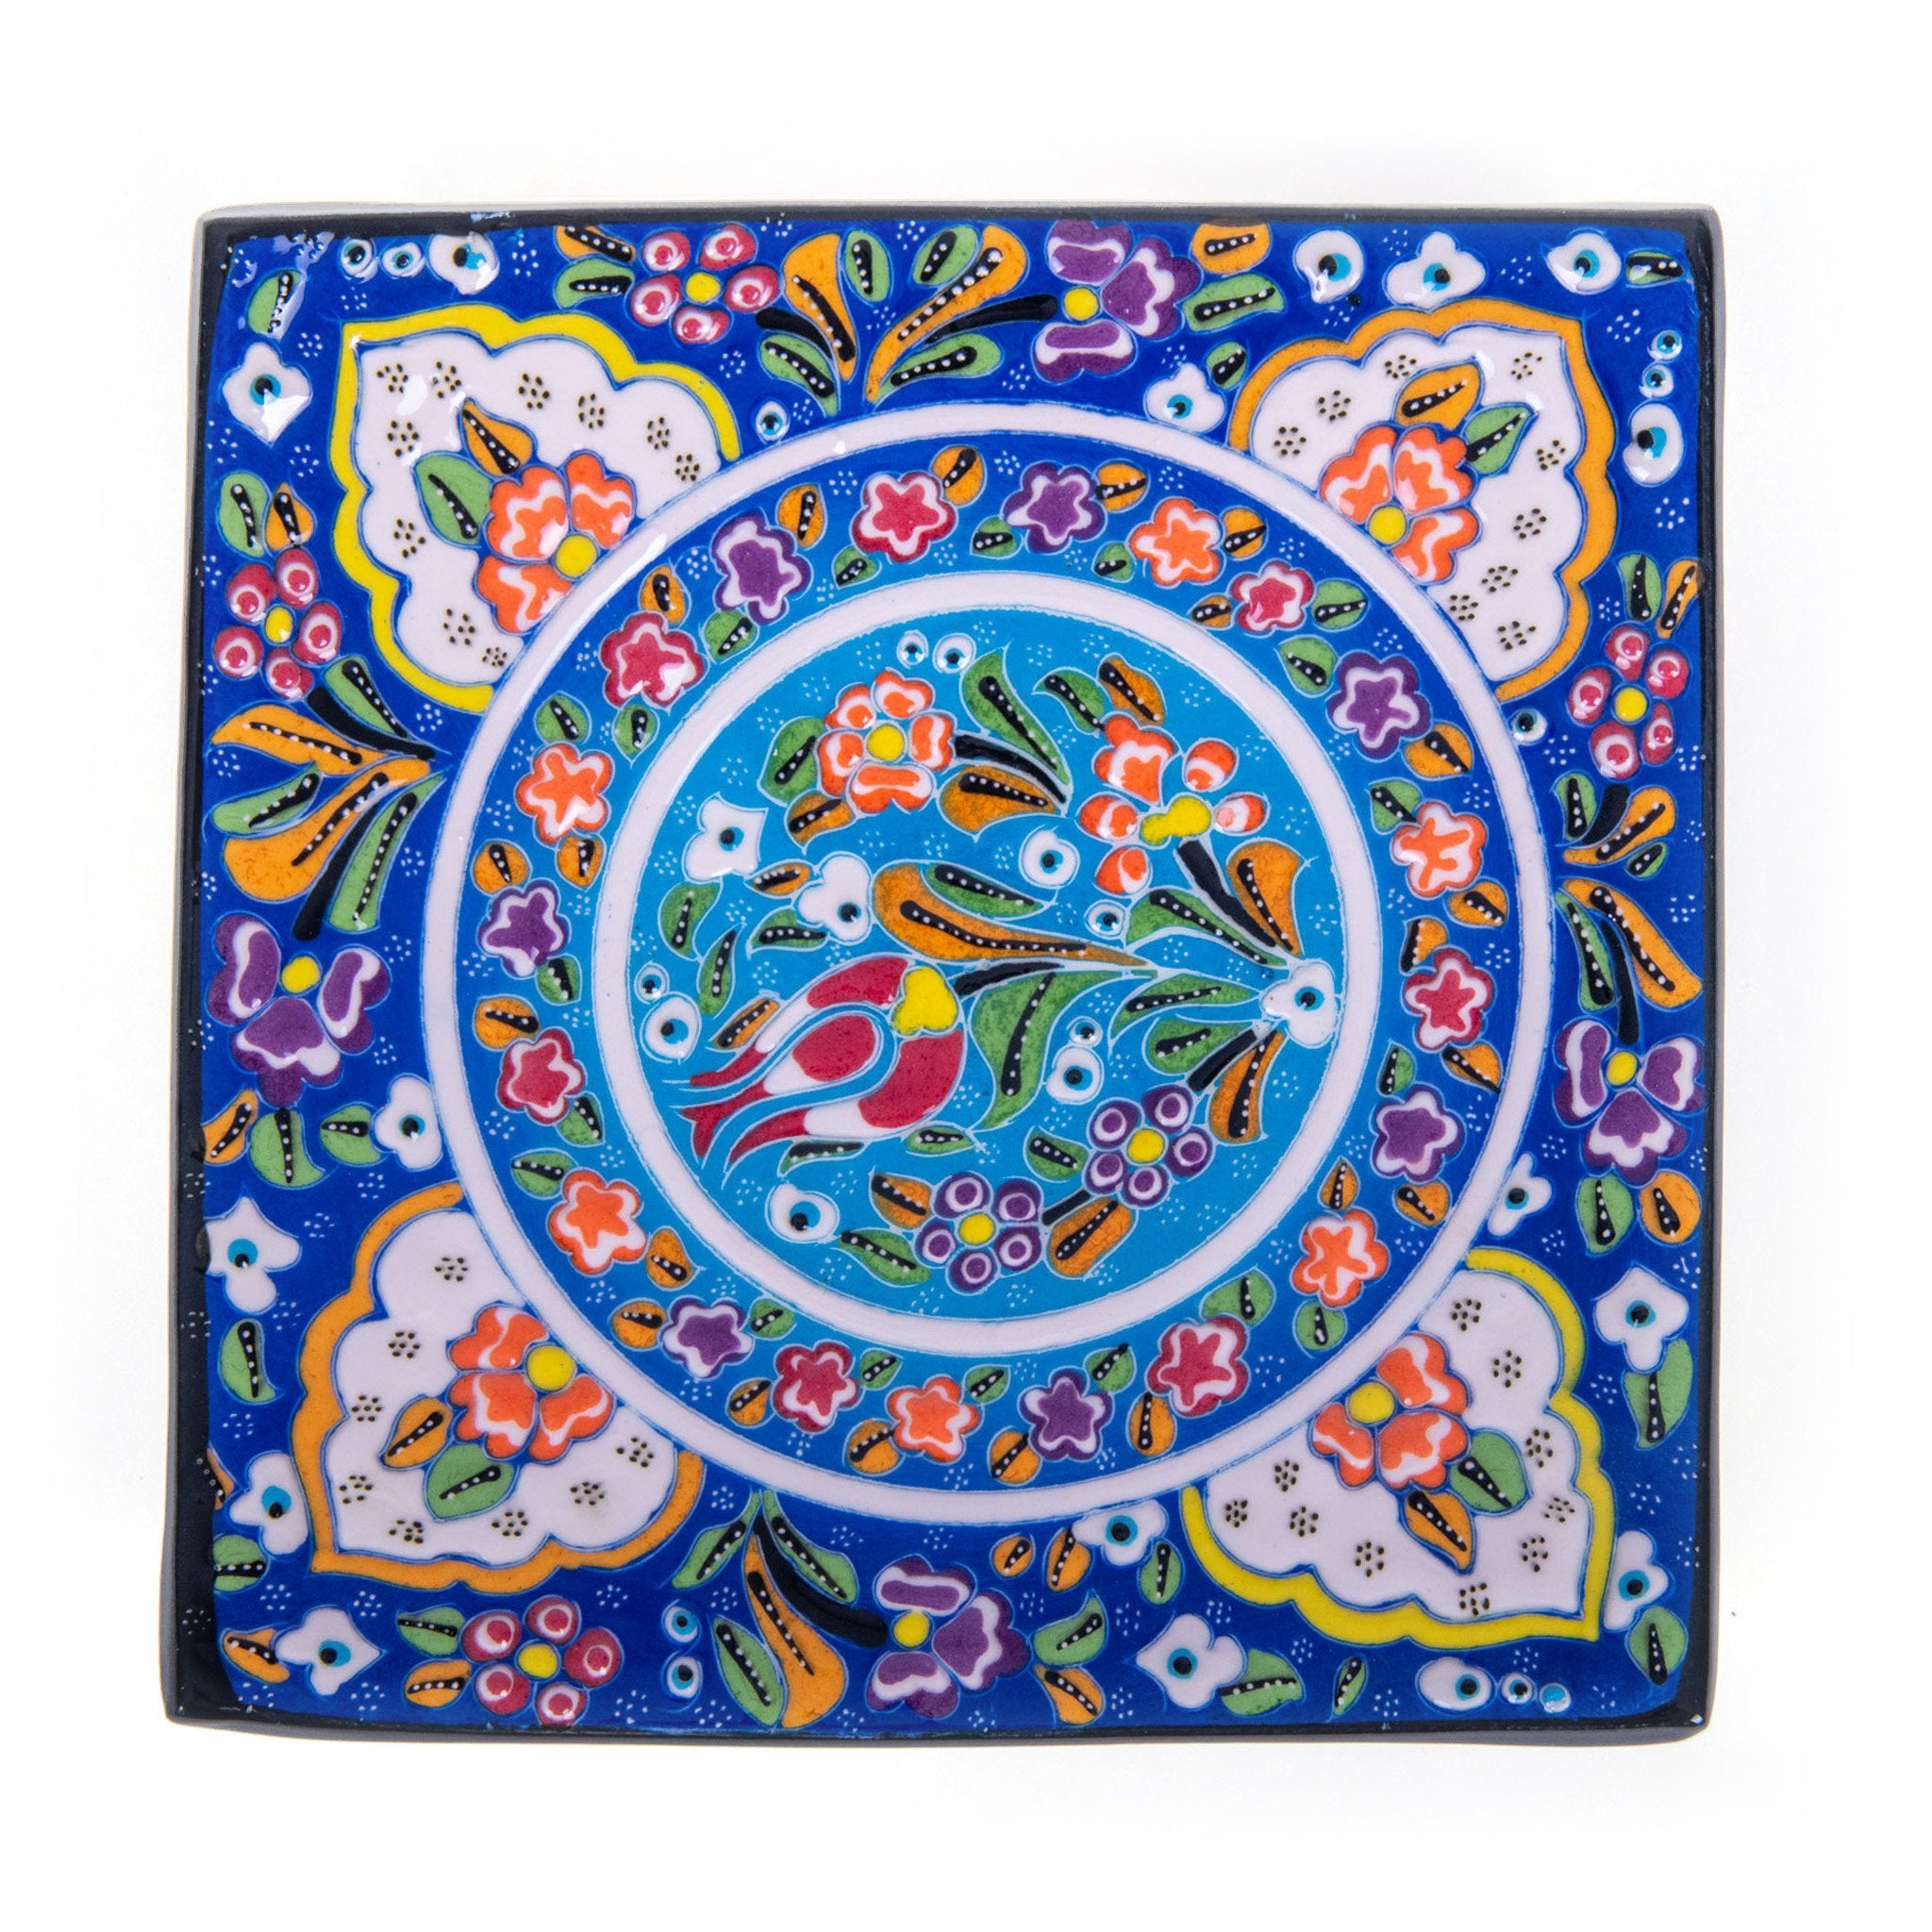 Turkish Ceramic Kutahya Design Handmade Square Plate - 20 cm (8'')